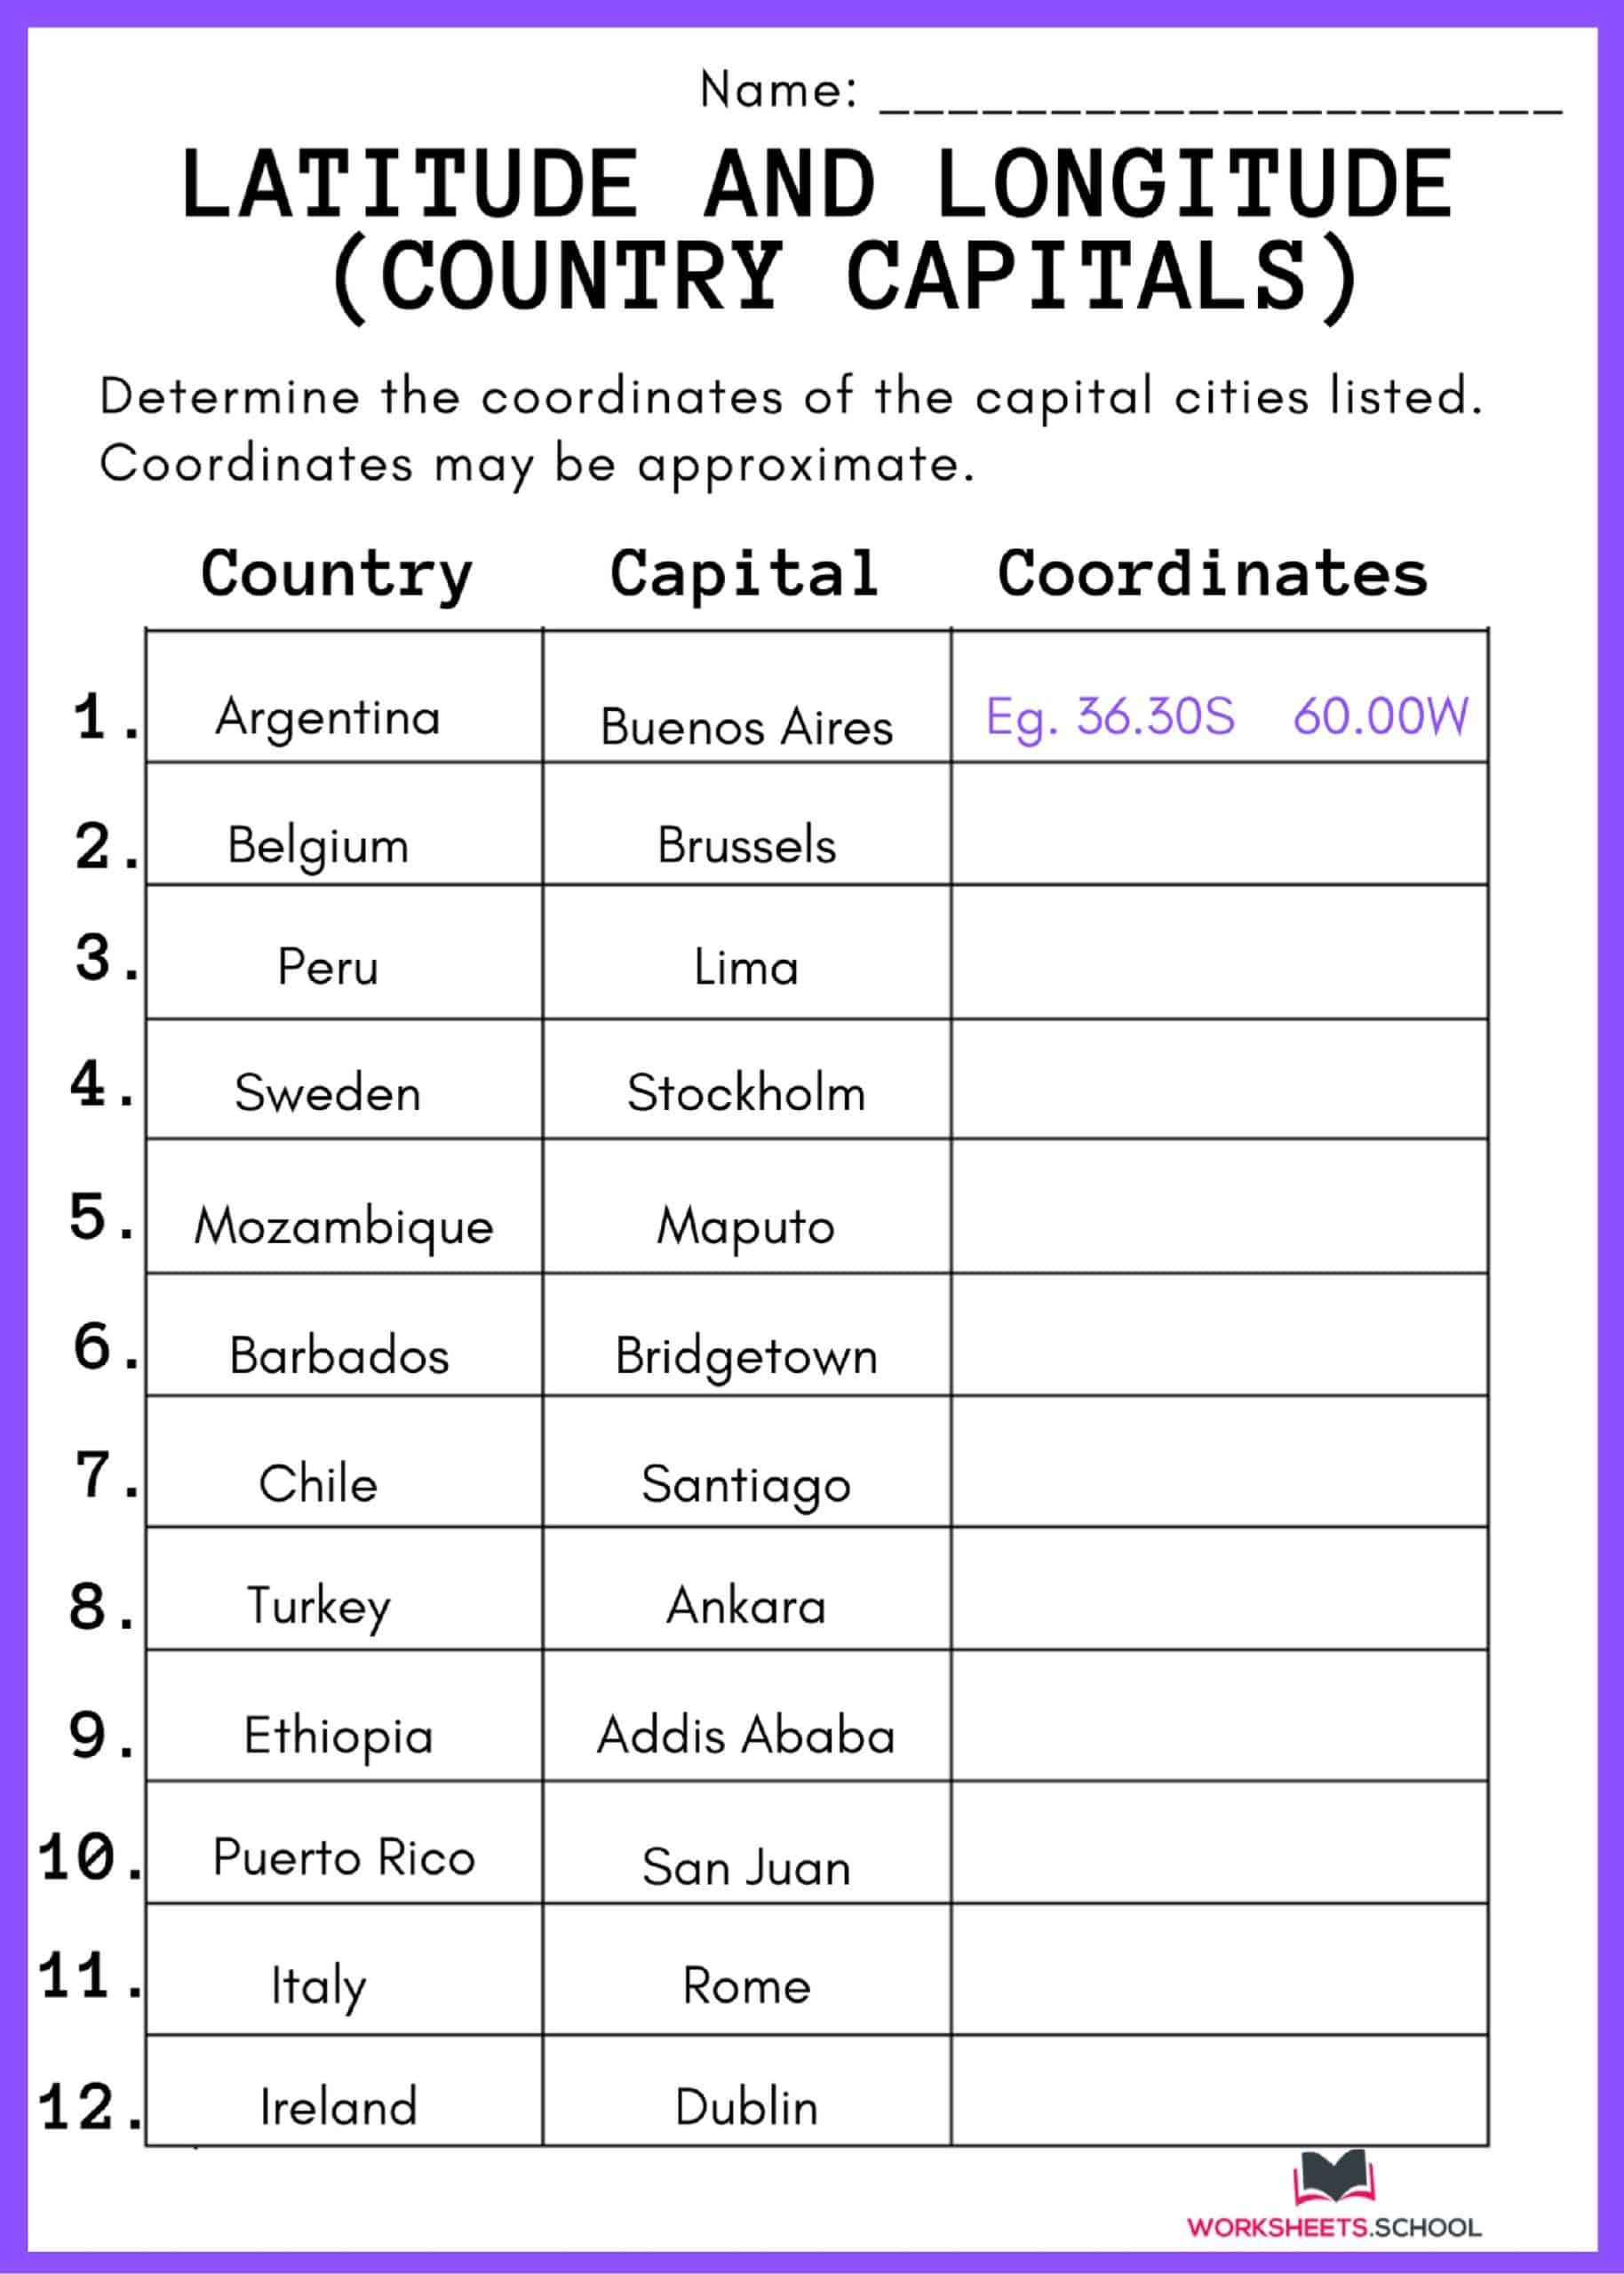 Latitude and Longitude Worksheet - Country Capitals